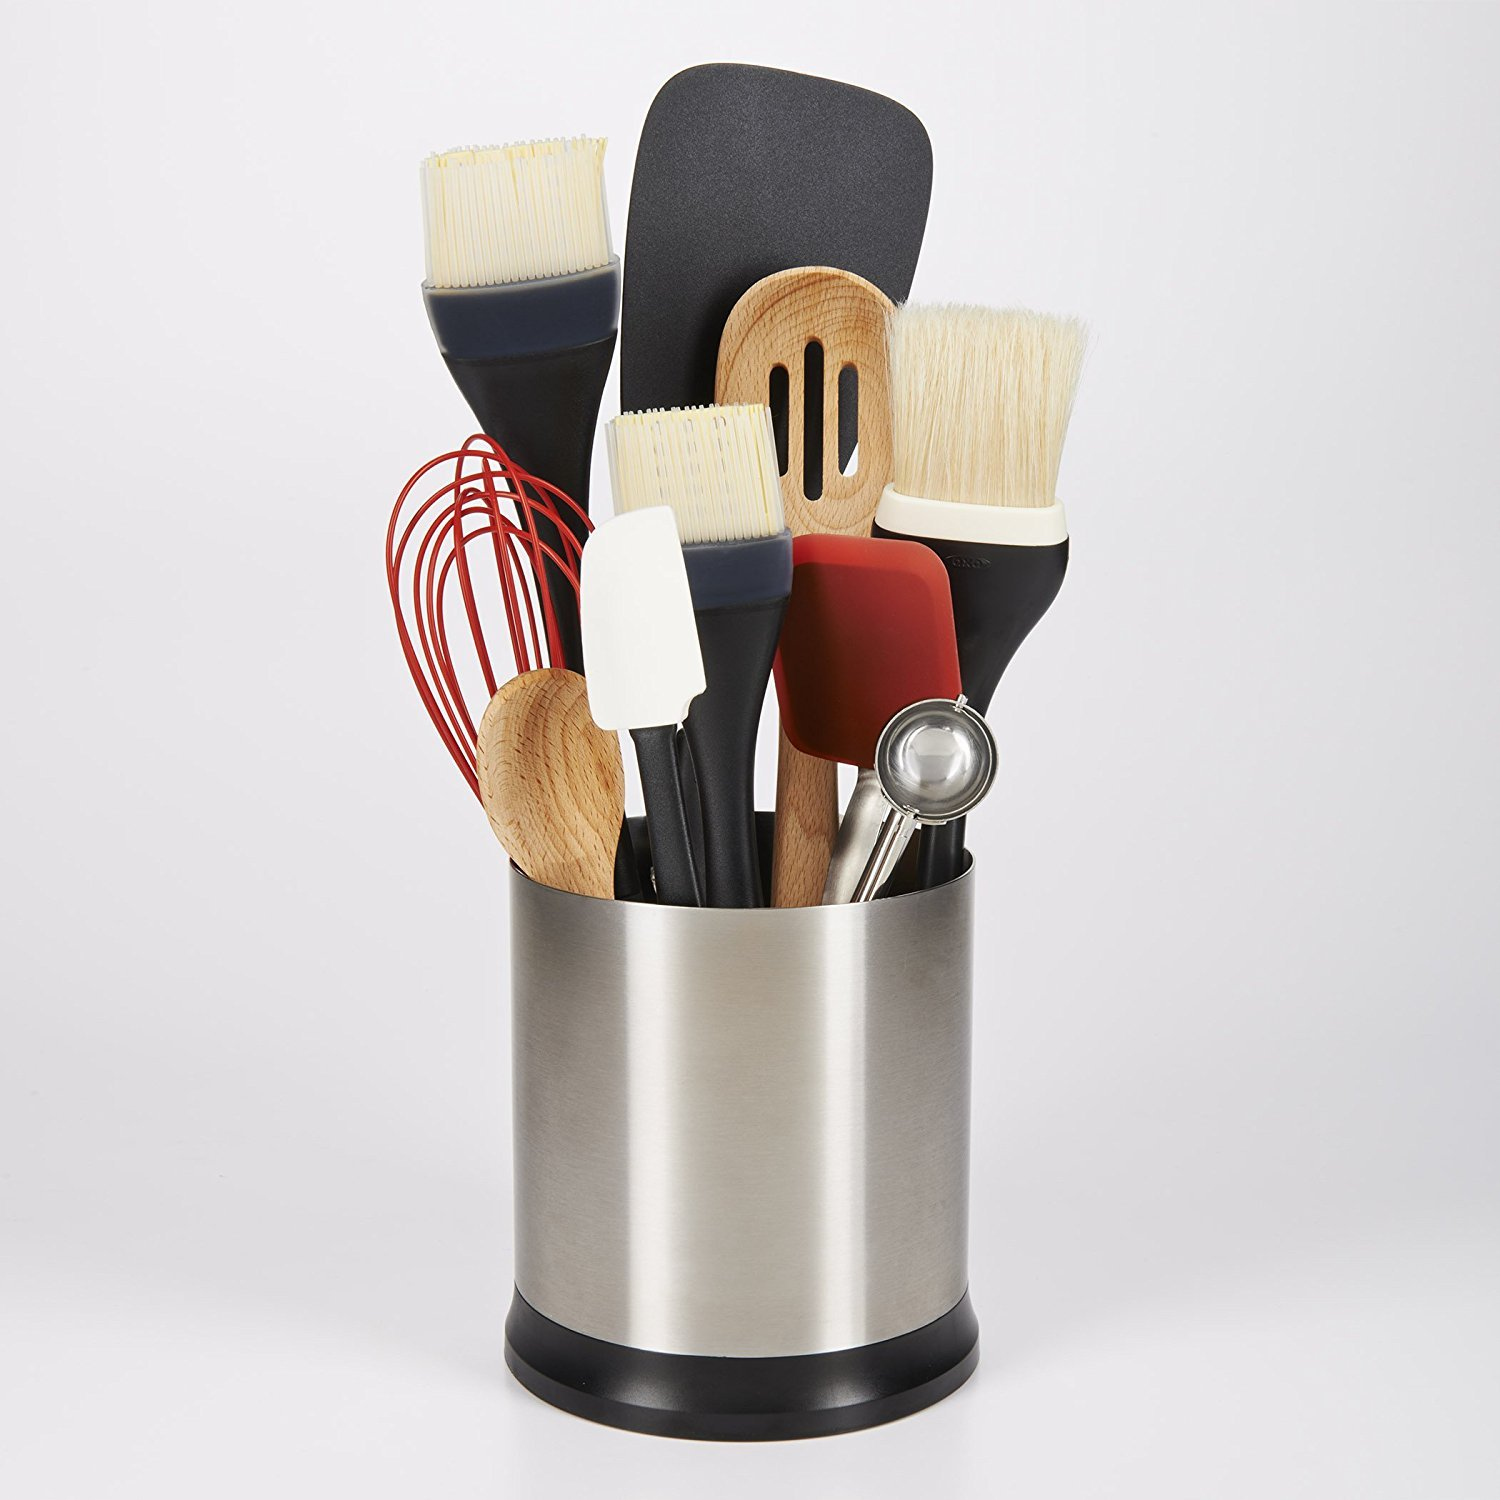 stunning Spinning Utensil Caddy Part - 12: Amazon.com - OXO Good Grips Stainless Steel Rotating Utensil Holder -  Utensil Organizers